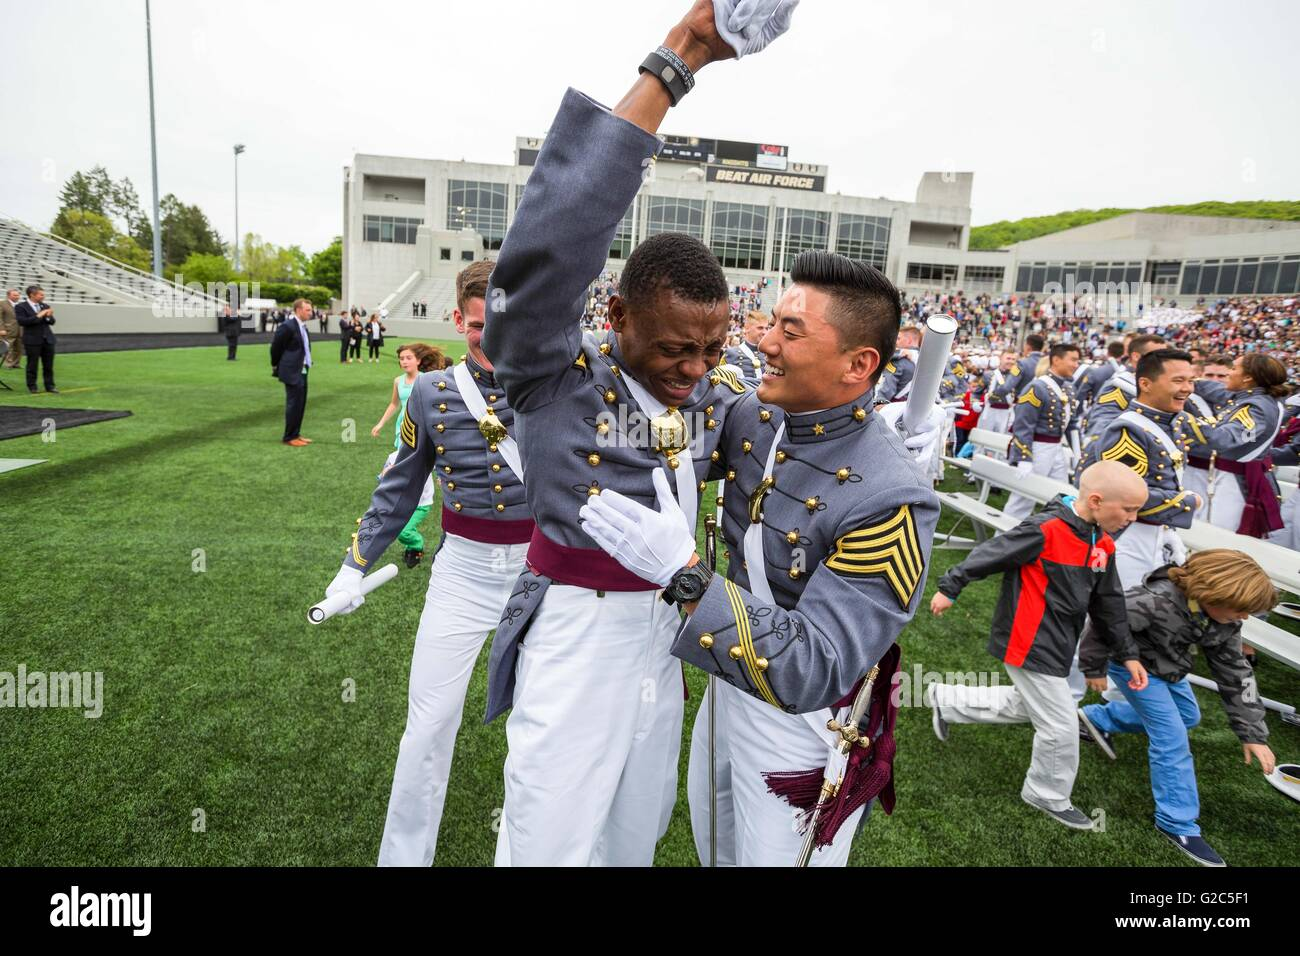 Tears stream down the face of West Point Cadet Alix Idrache as he is embraced by his friends during the 2016 commencement Stock Photo